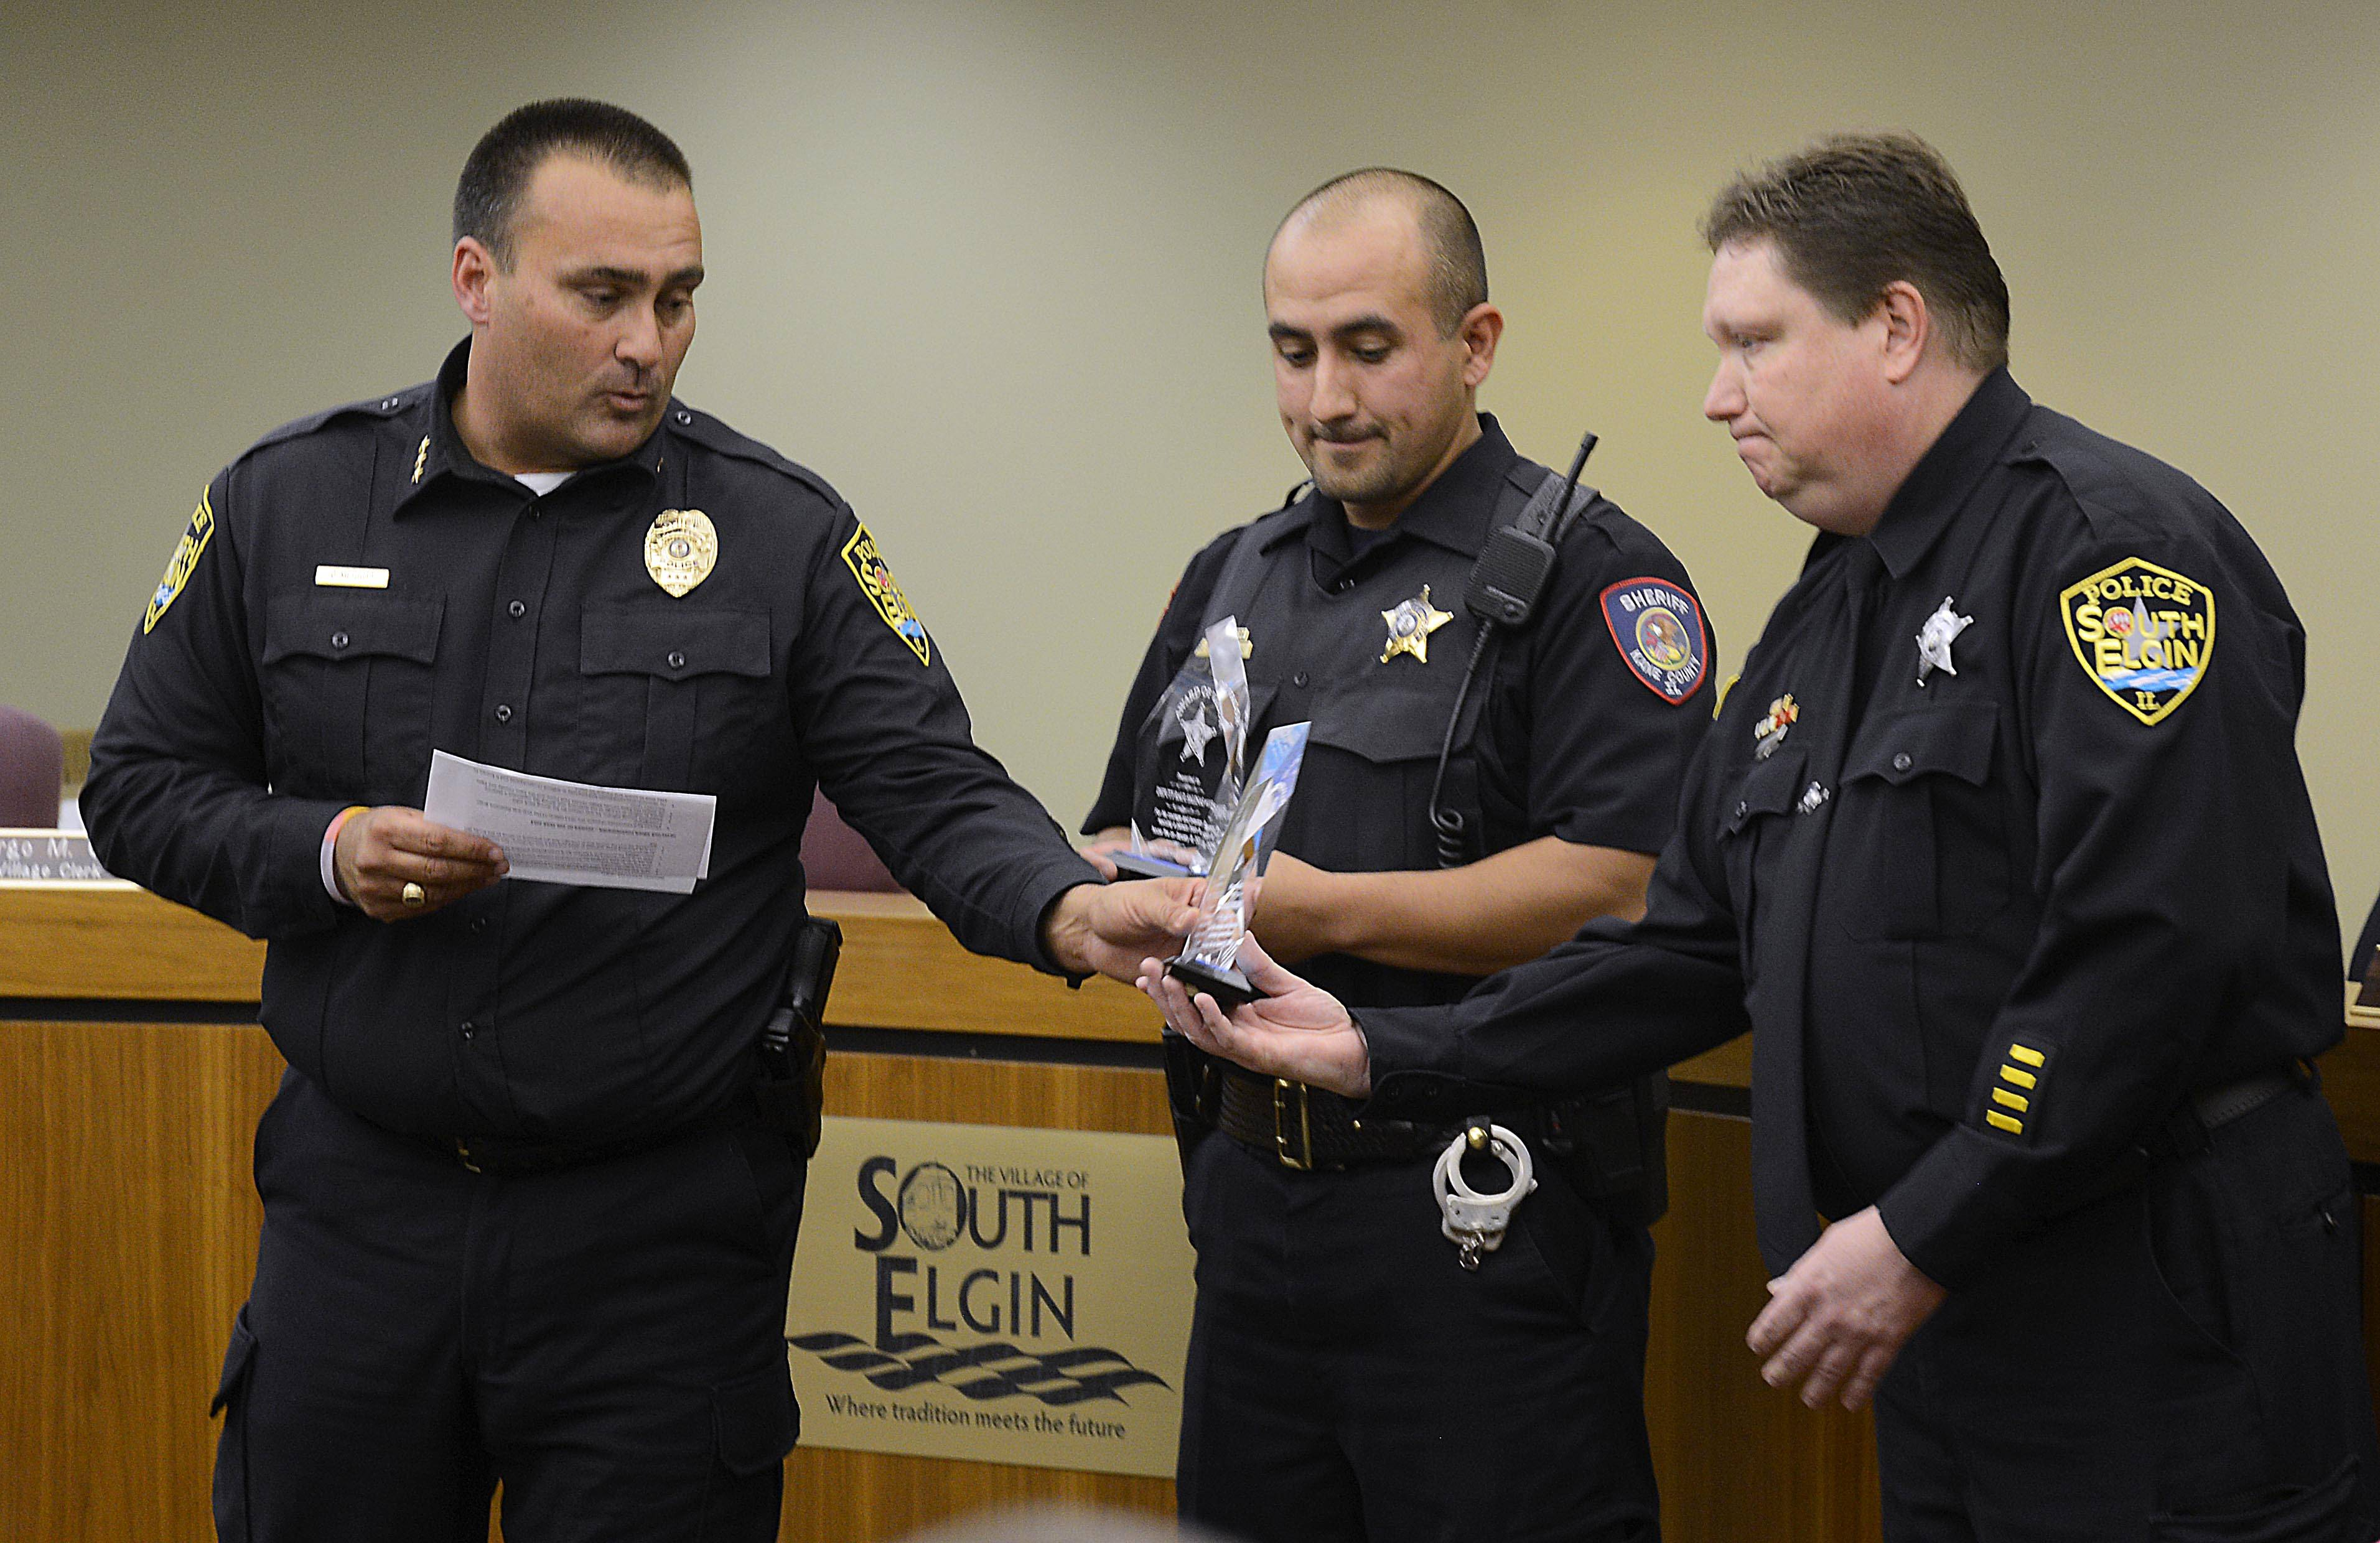 South Elgin Police Chief Christopher Merritt gives a Valor Award to police officer Roger Isham, right, as Kane County sheriff's deputy Raul Salinas holds his Monday night at the village board meeting. They responded separately to a house fire last year and together saved the life of a woman in a wheelchair who was trapped.